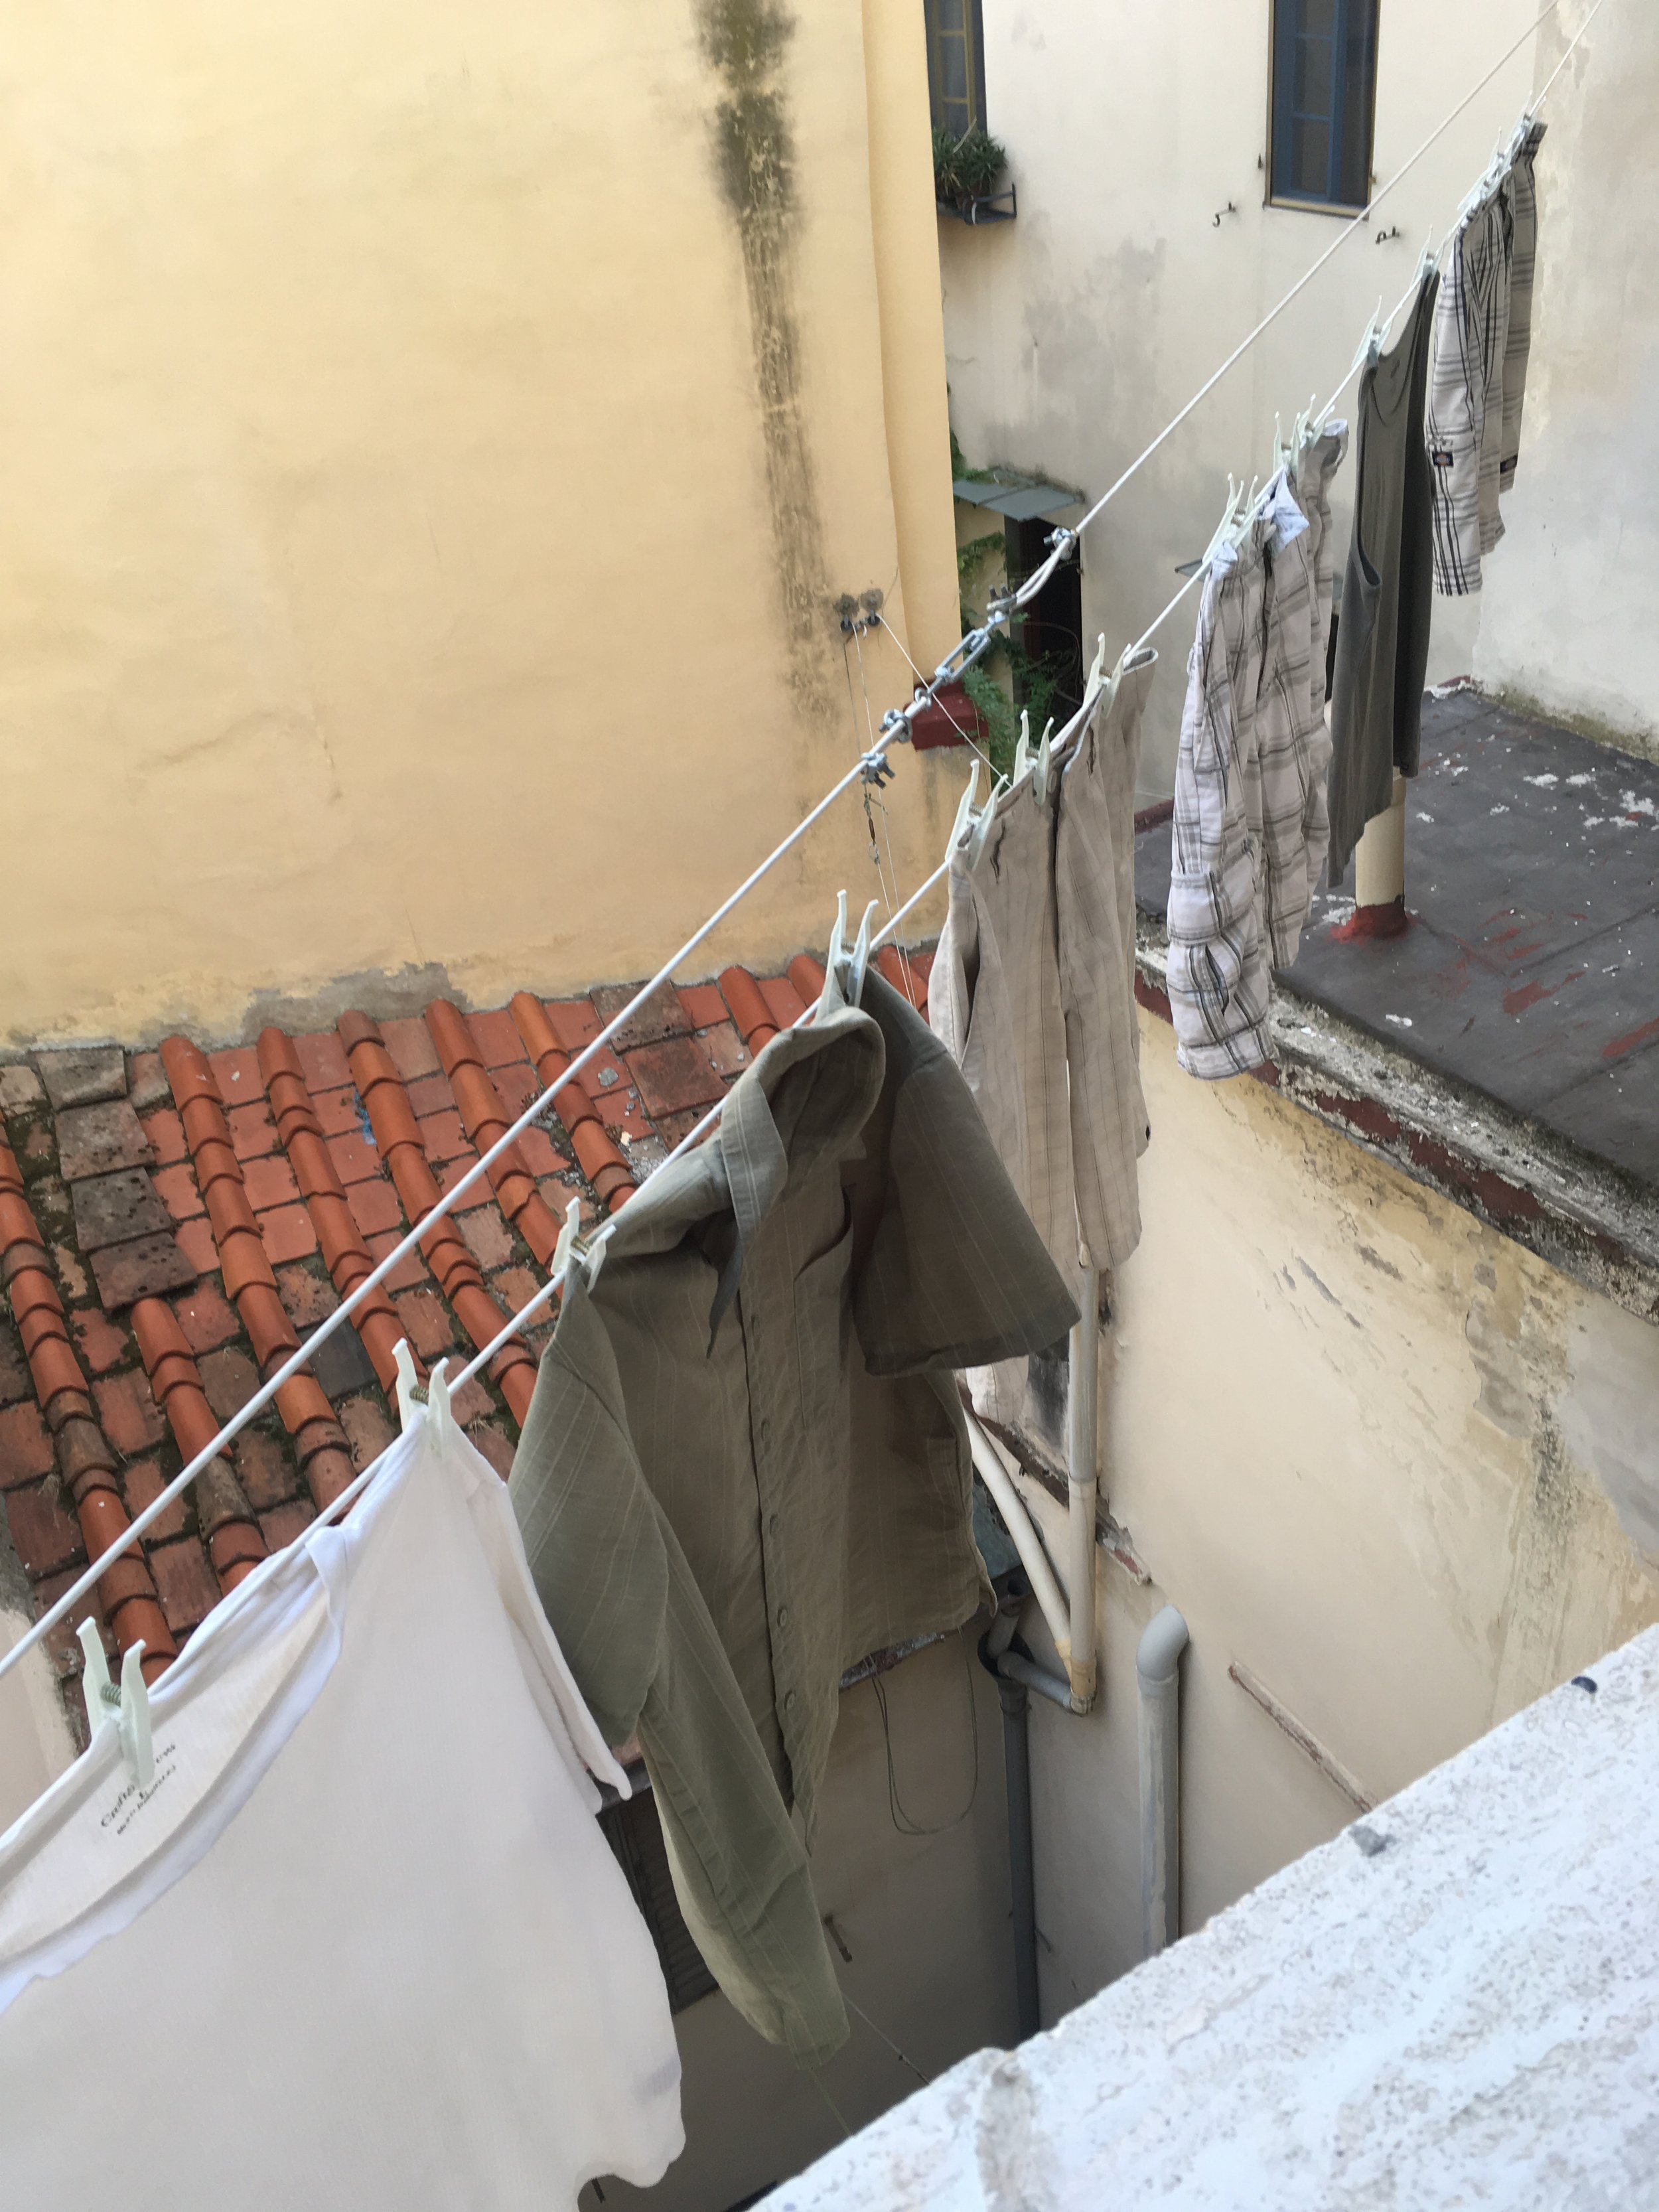 266 Hanging Laundry in Florence Italy.JPG